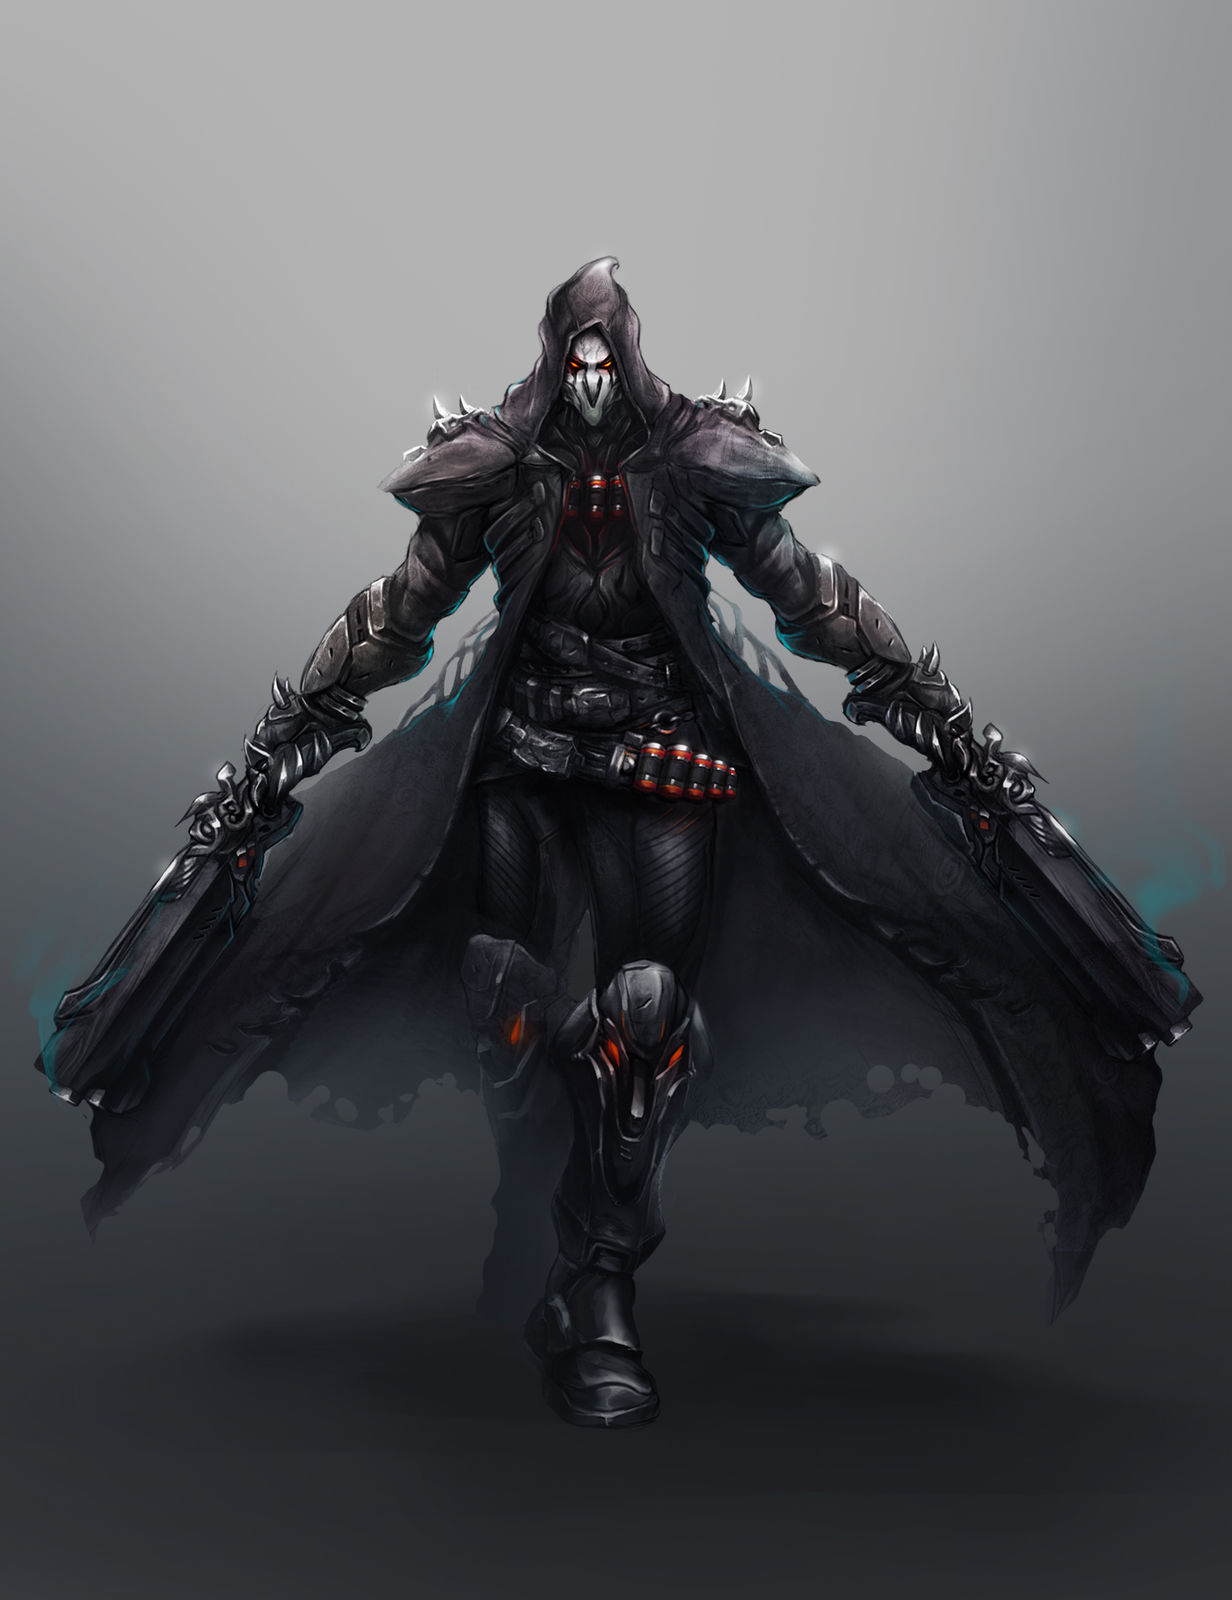 Overwatch wallpapers images photos pictures backgrounds - Overwatch Reaper Wallpaper Wallpapersafari